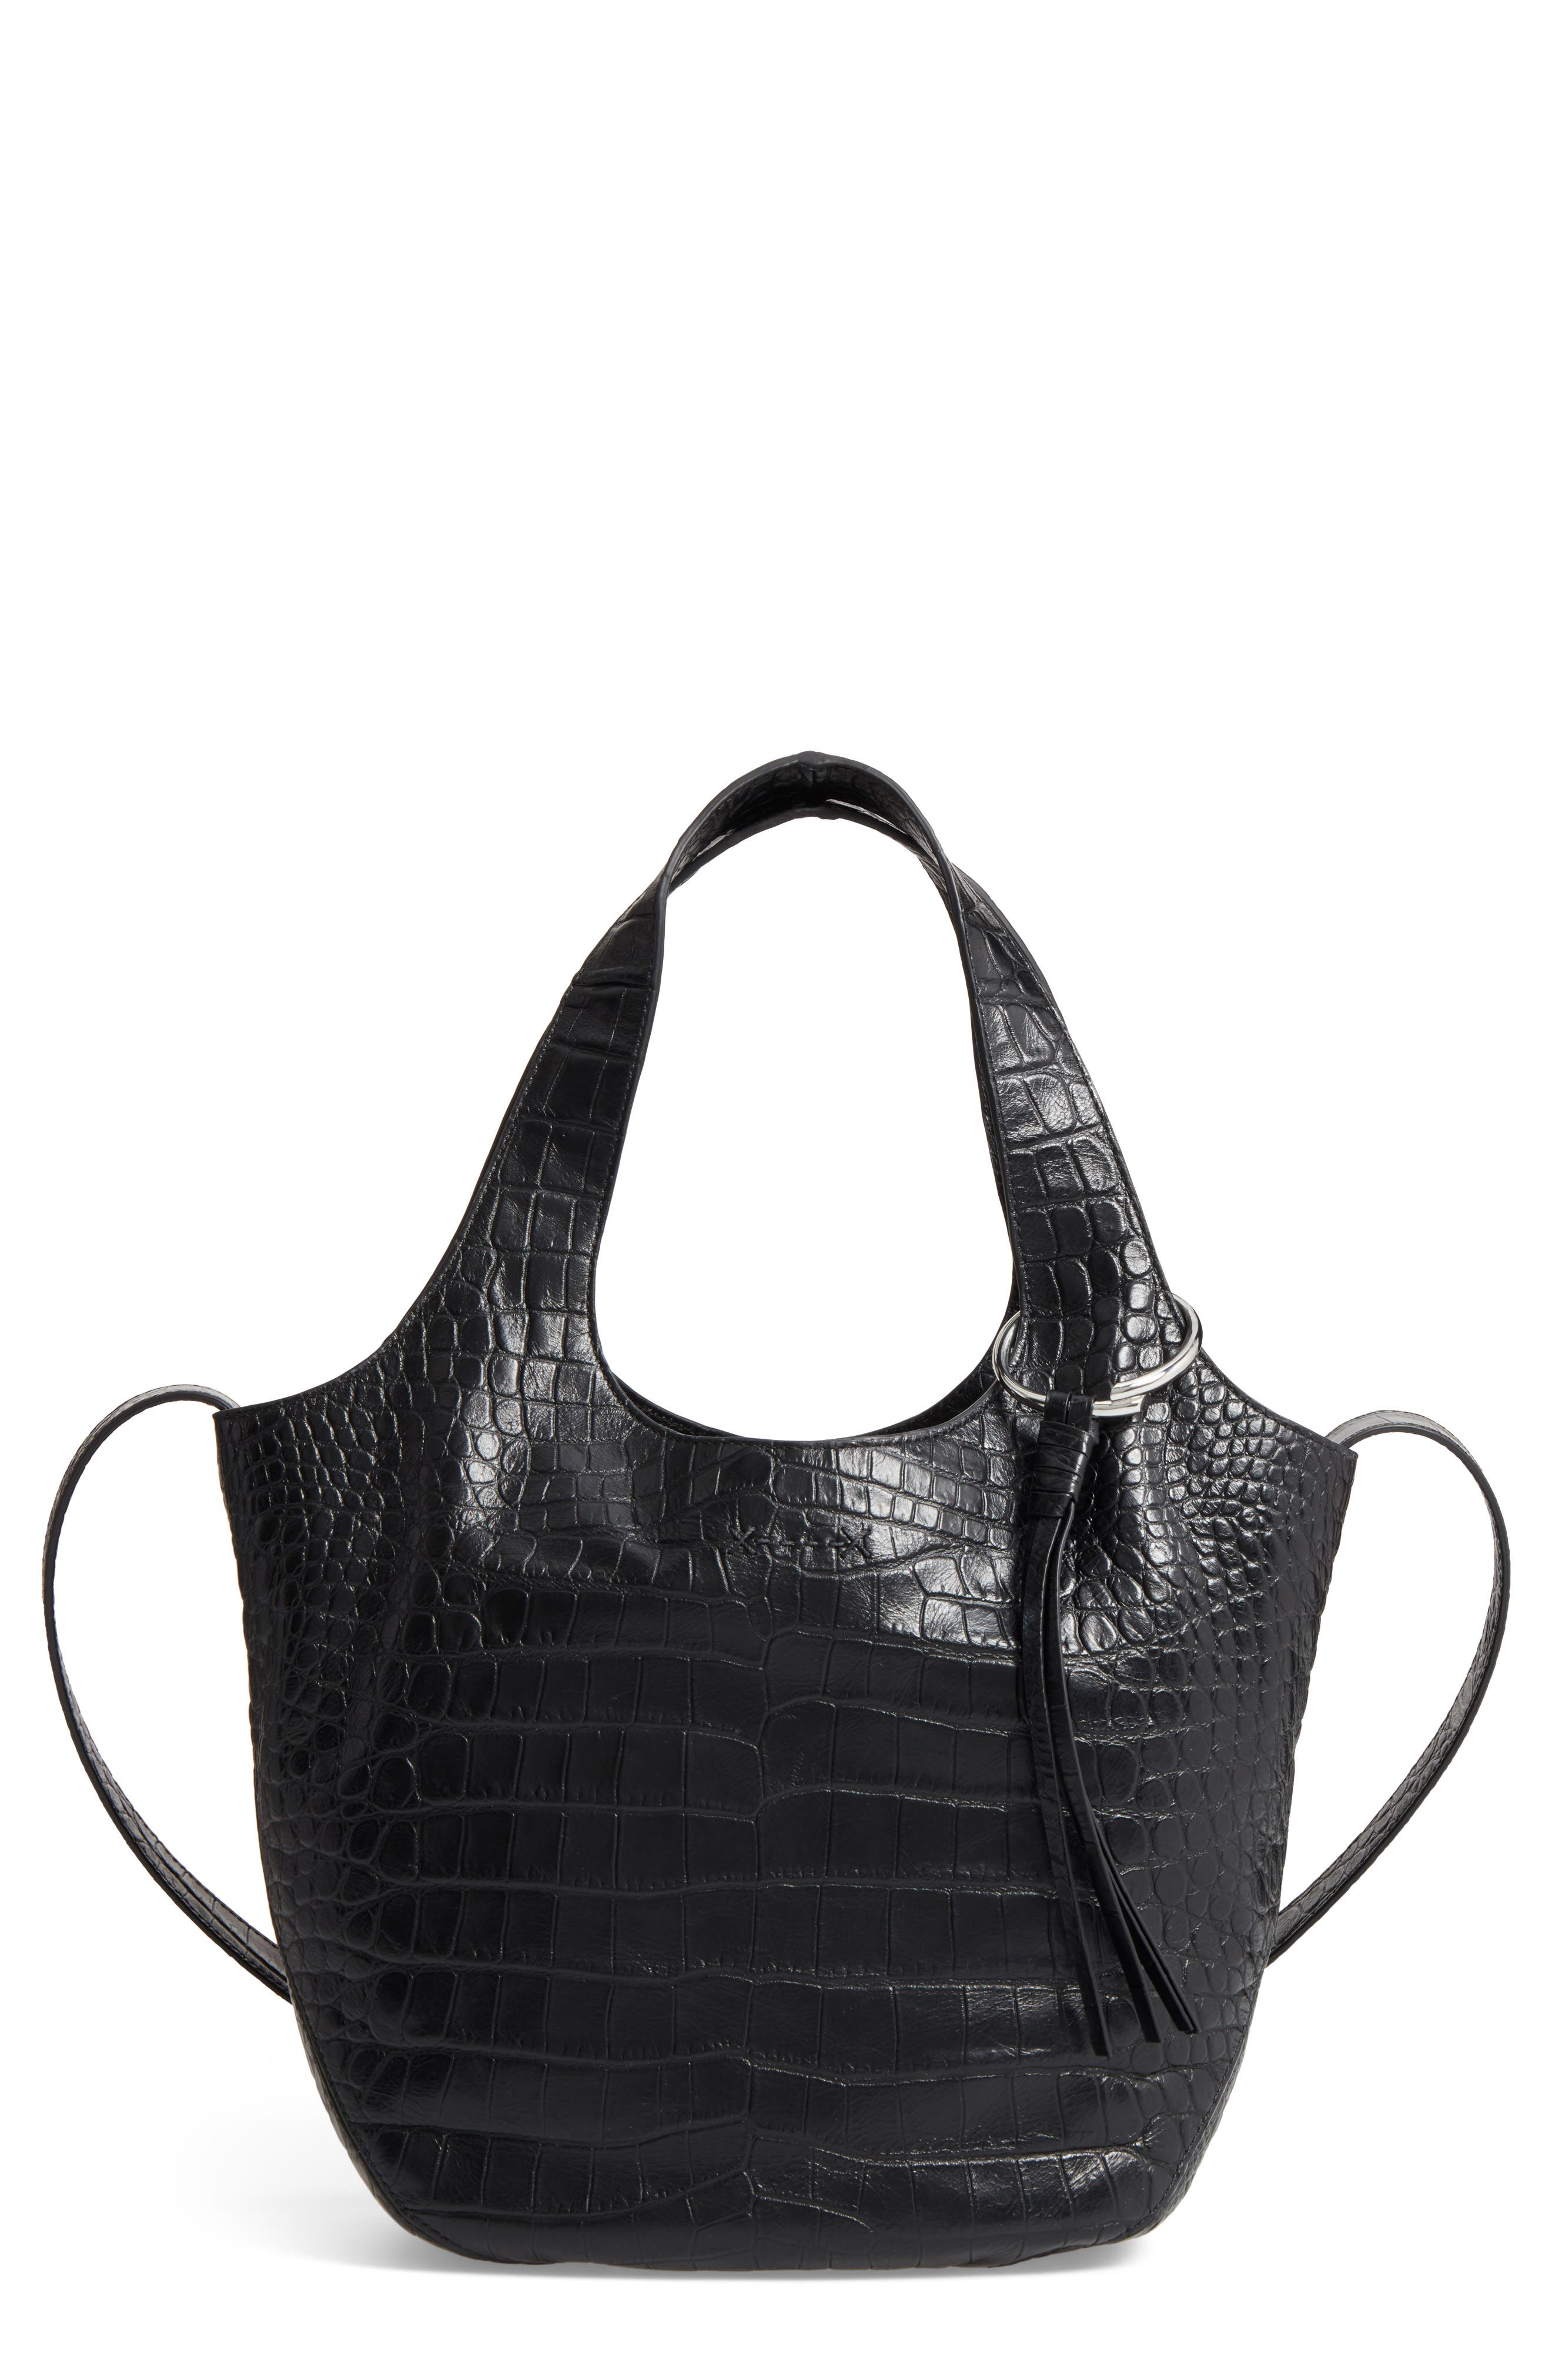 Elizabeth and James Small Finley Embossed Leather Shopper